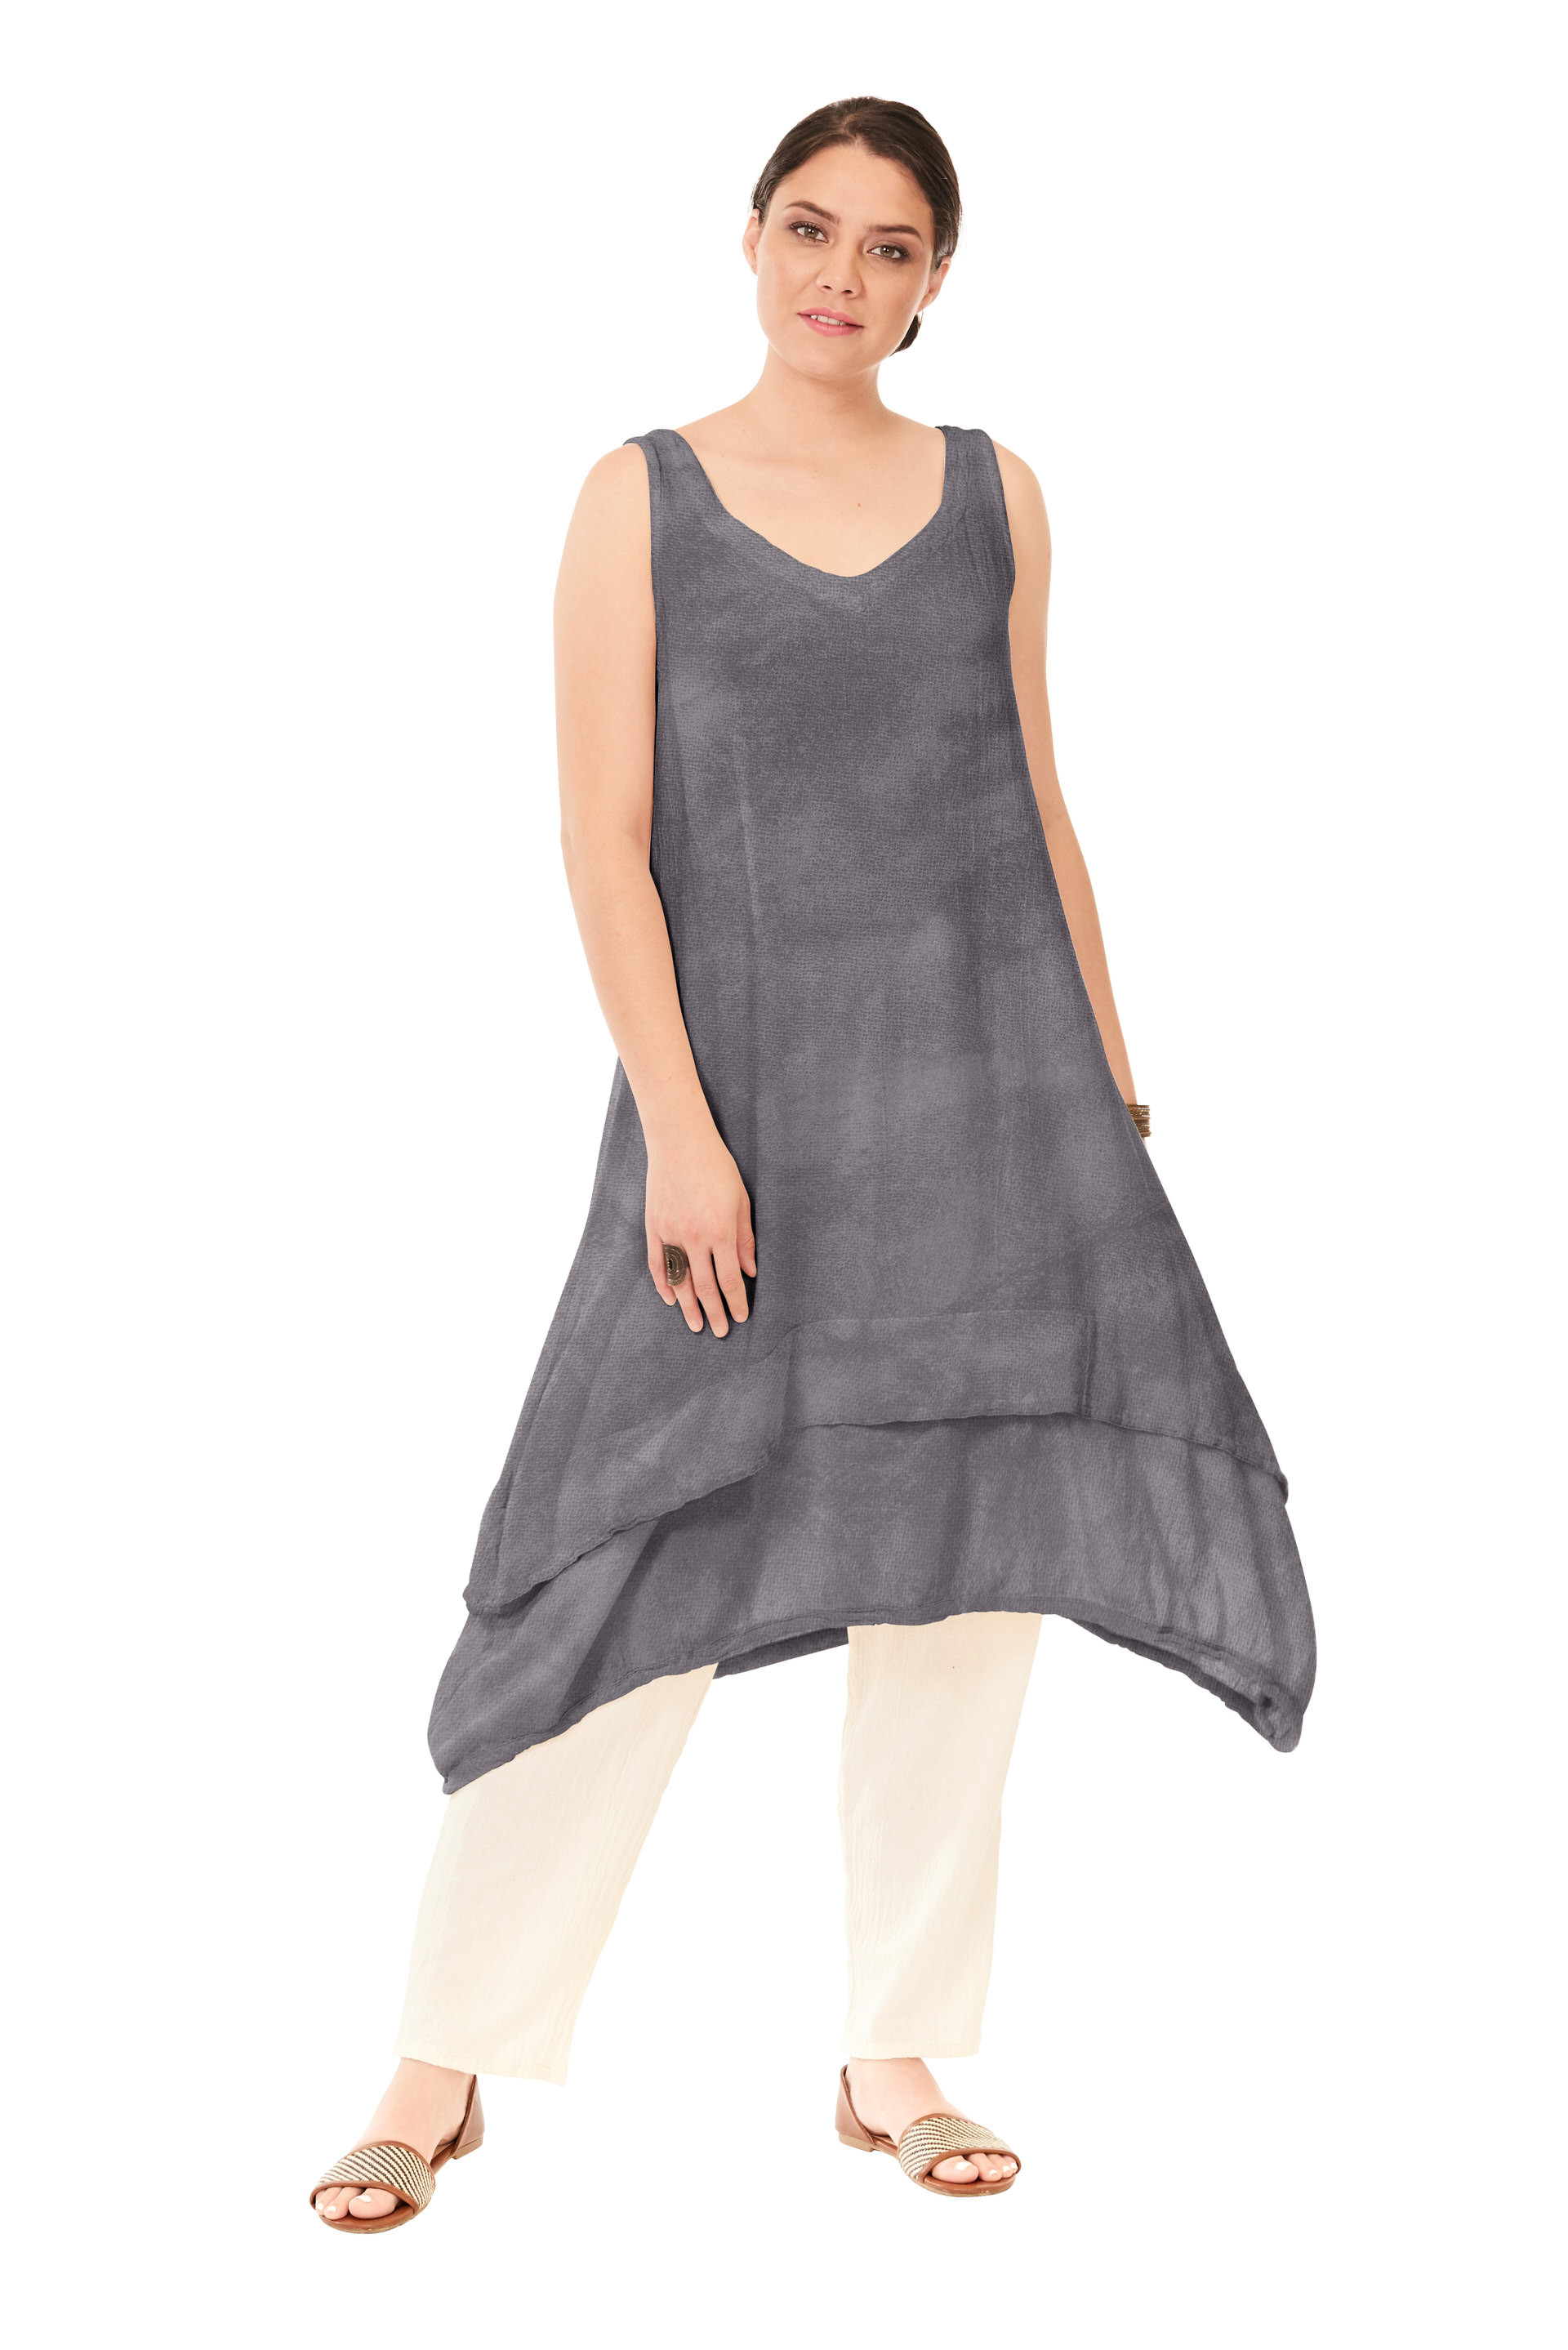 OMG - A V-neck sleeveless cotton gauze tunic top with double layered hemline.  This piece can be worn as a dress or vest too!